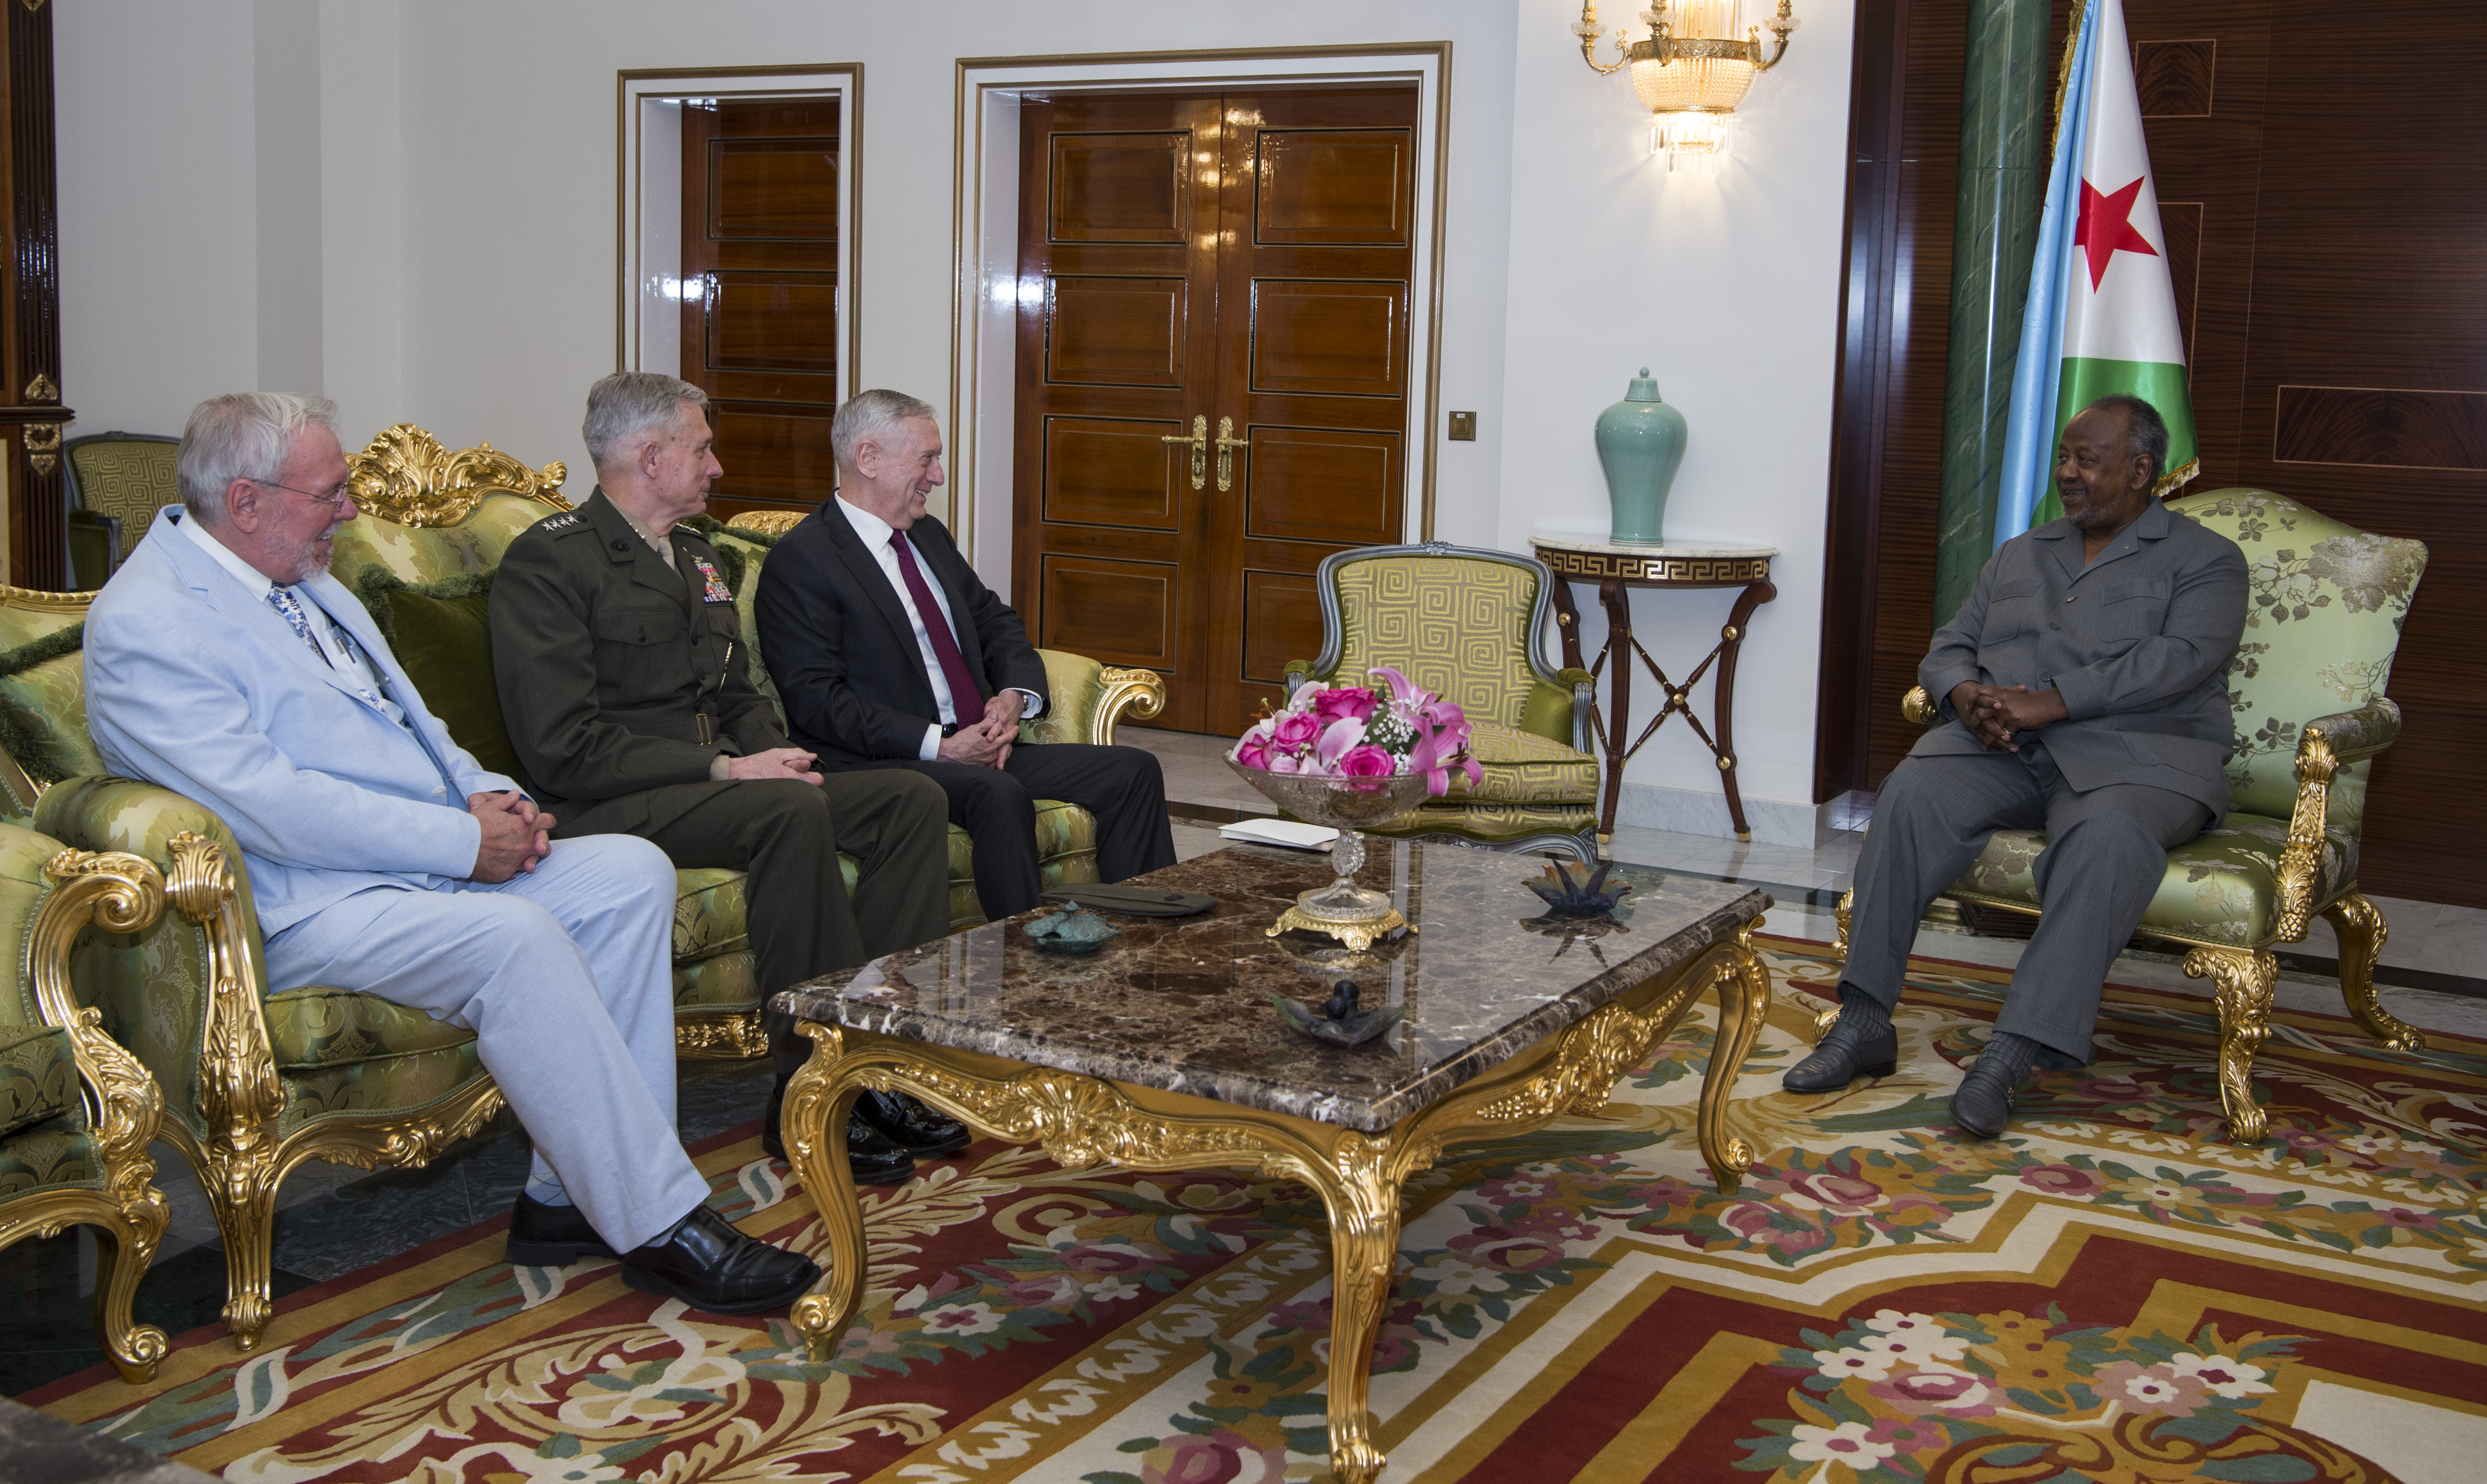 Secretary of Defense Jim Mattis and U.S. Africa Command Commander Gen. Thomas D. Waldhauser meet with Djibouti's President Ismail Omar Guelleh at his presidential palace in Djibouti City, Djibouti, April 23, 2017. (DOD photo by U.S. Air Force Tech. Sgt. Brigitte N. Brantley/Released)